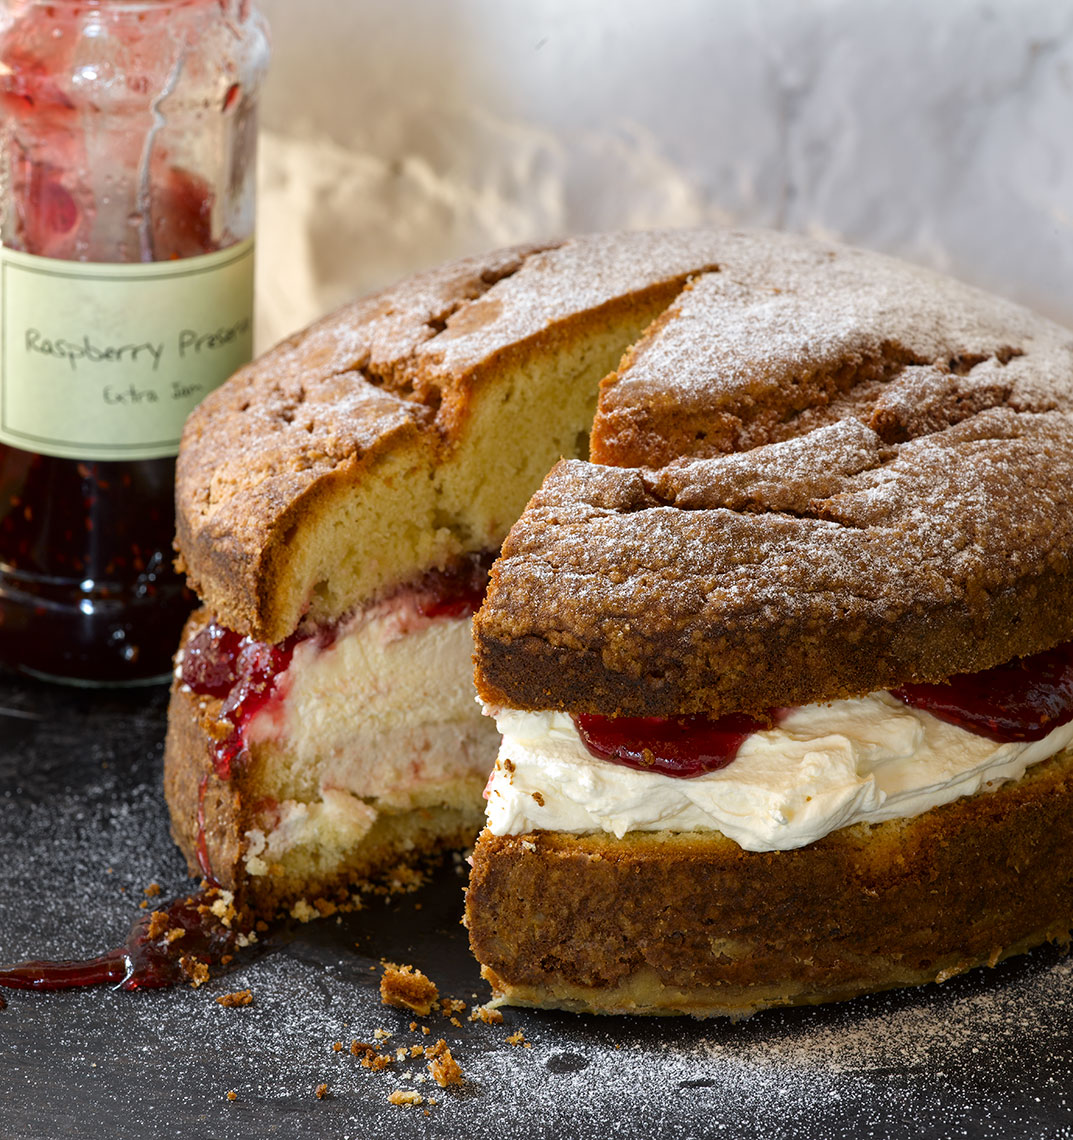 River Cottage Victoria Sponge | Colin Campbell - Food Photographer